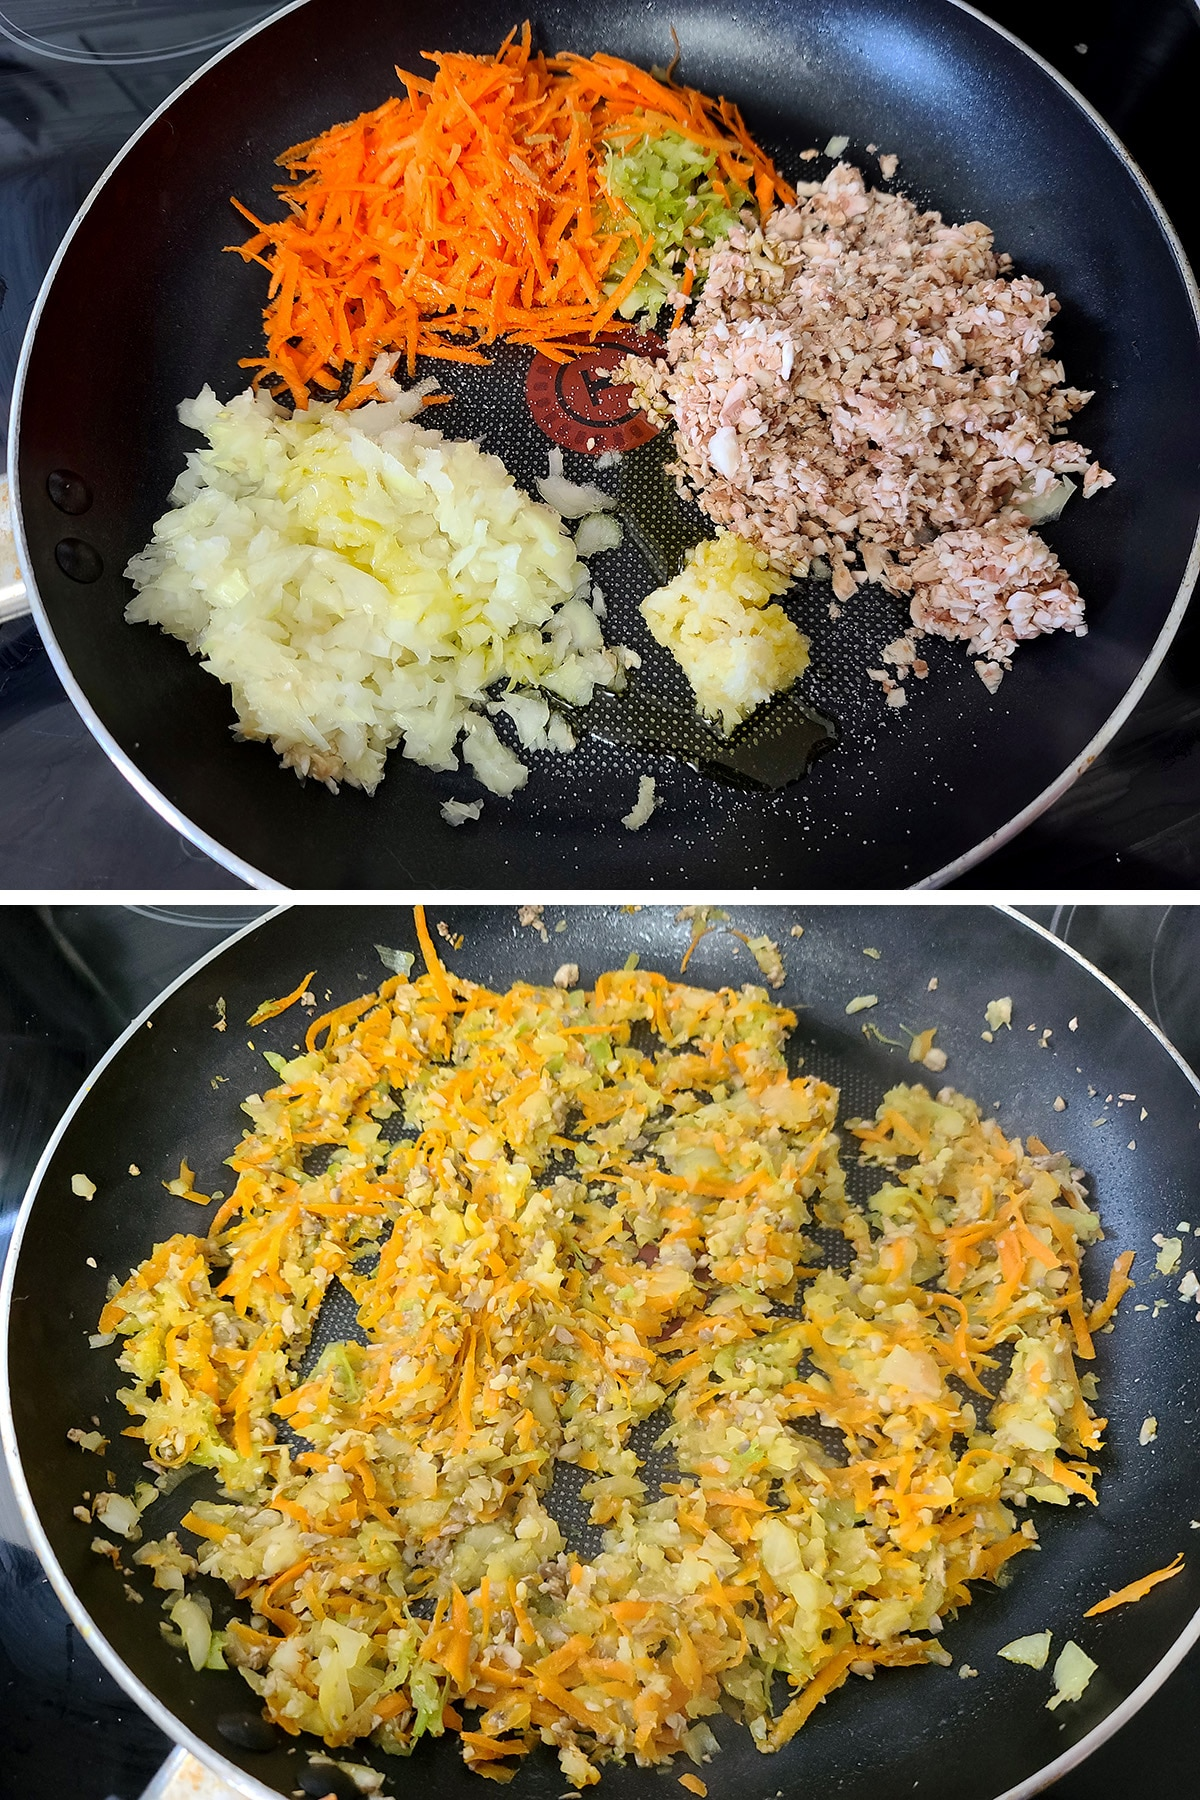 Carrots, mushrooms, onions, and garlic in a nonstick pan, before and ater mixing and cooking down.